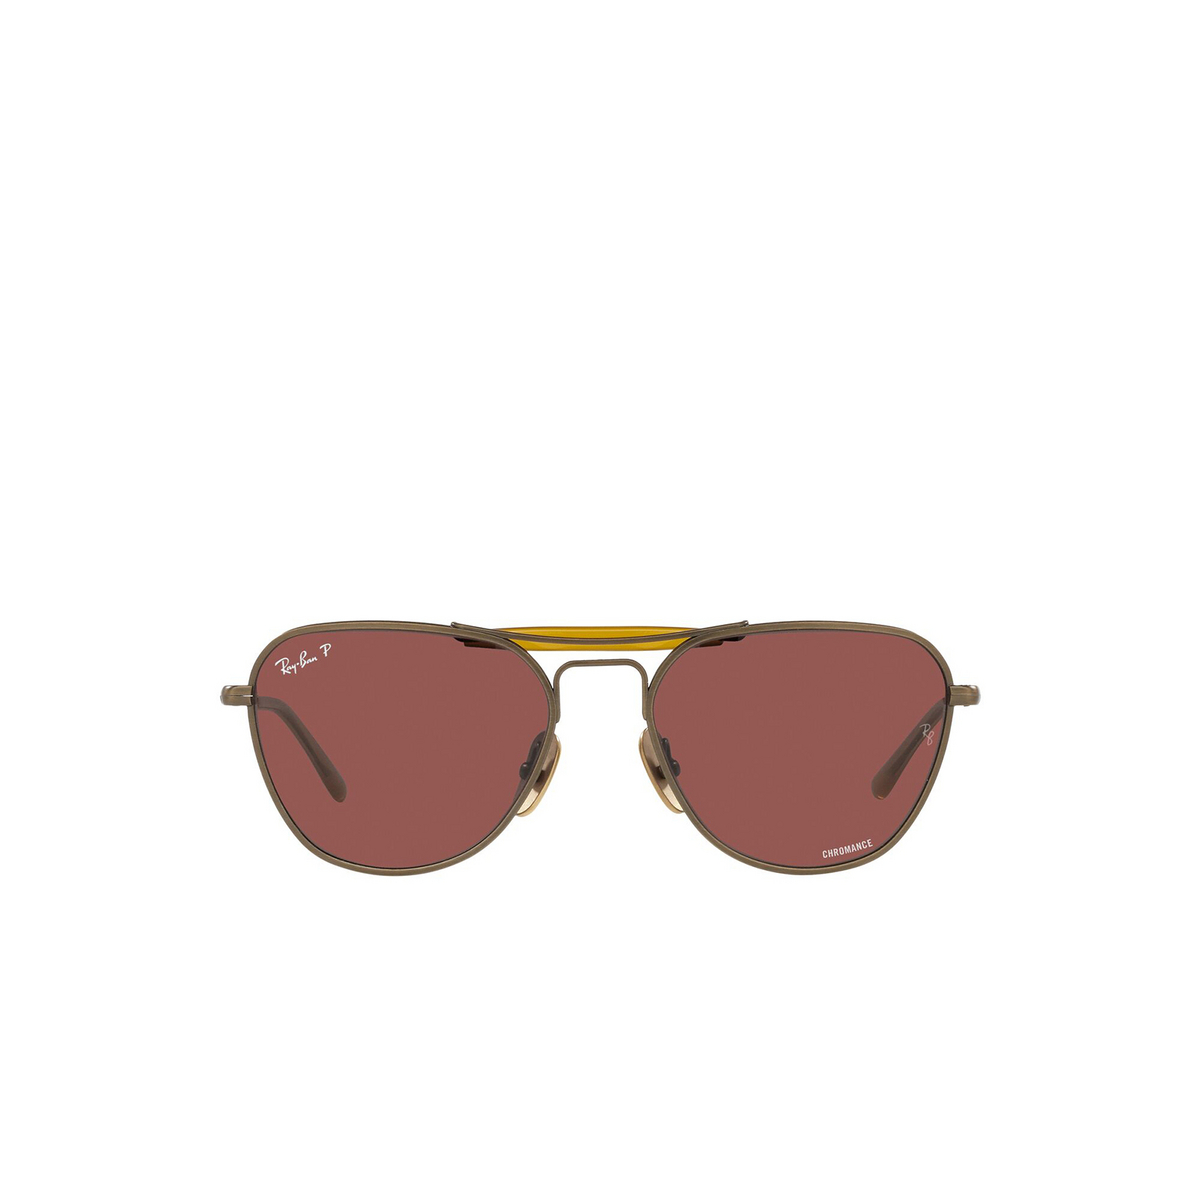 Ray-Ban® Irregular Sunglasses: RB8064 color Demi Gloss Antique Gold 9207AL - front view.